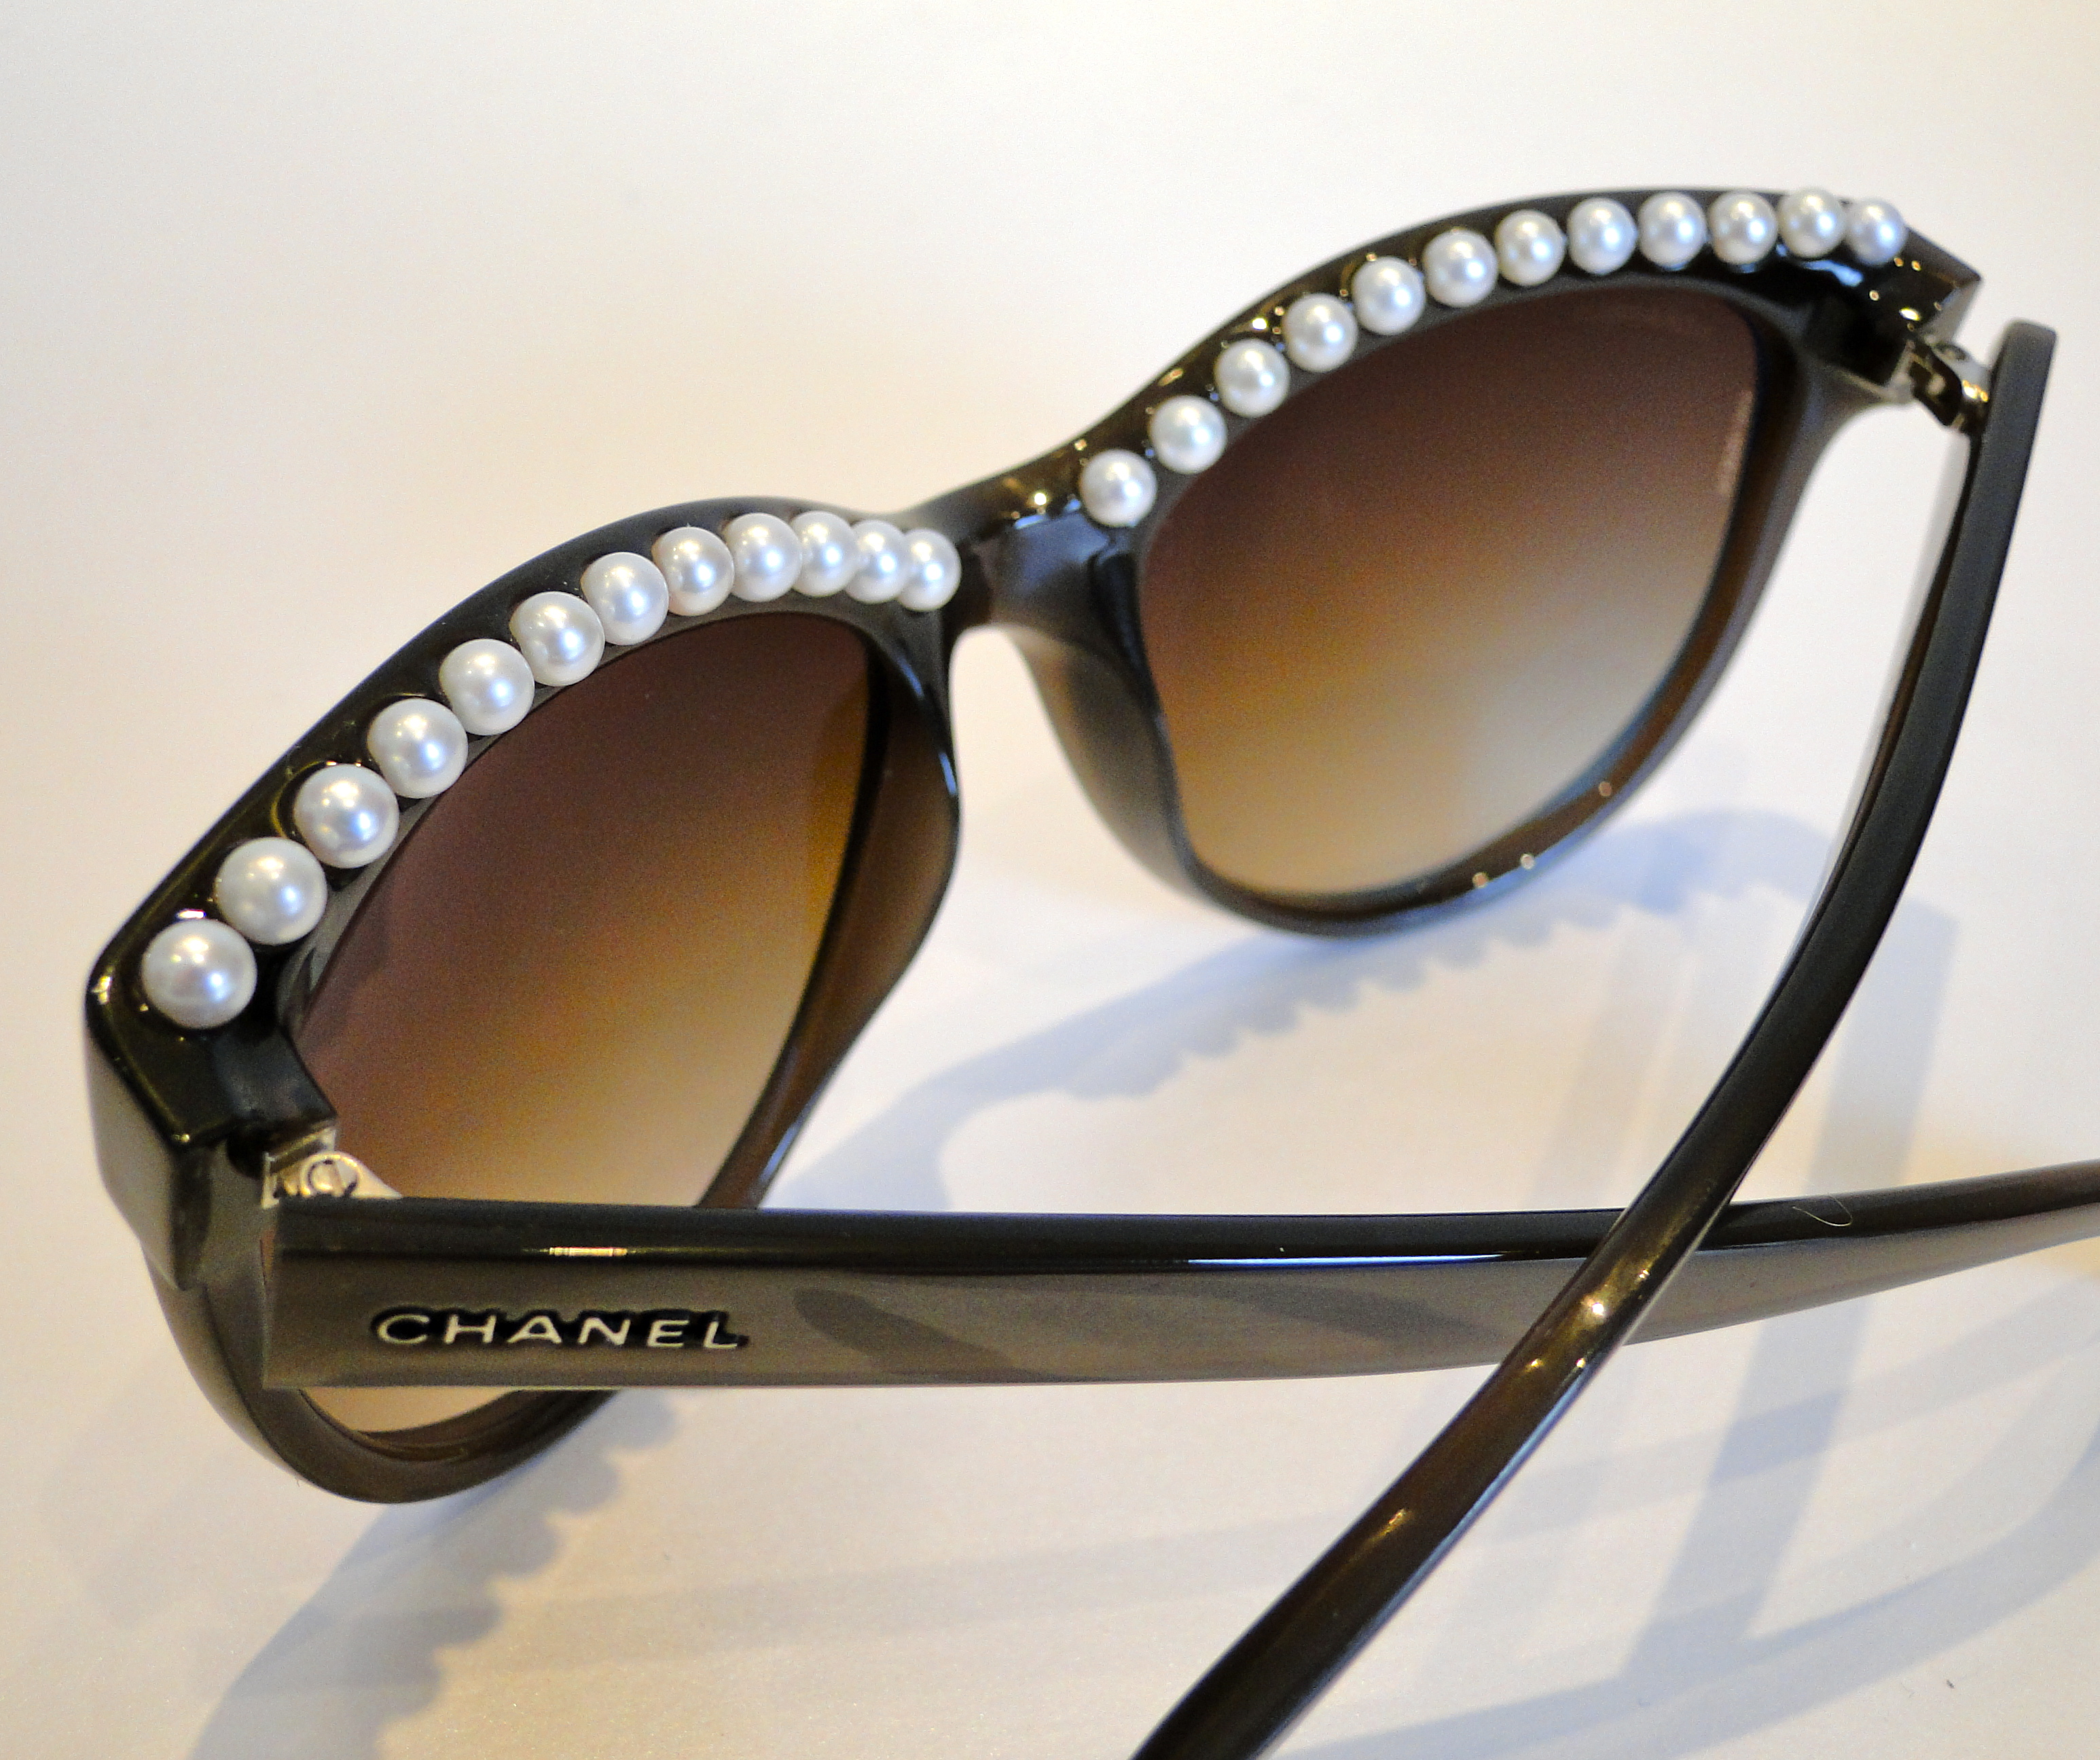 Chanel Pearl Sunglasses The Luxe List